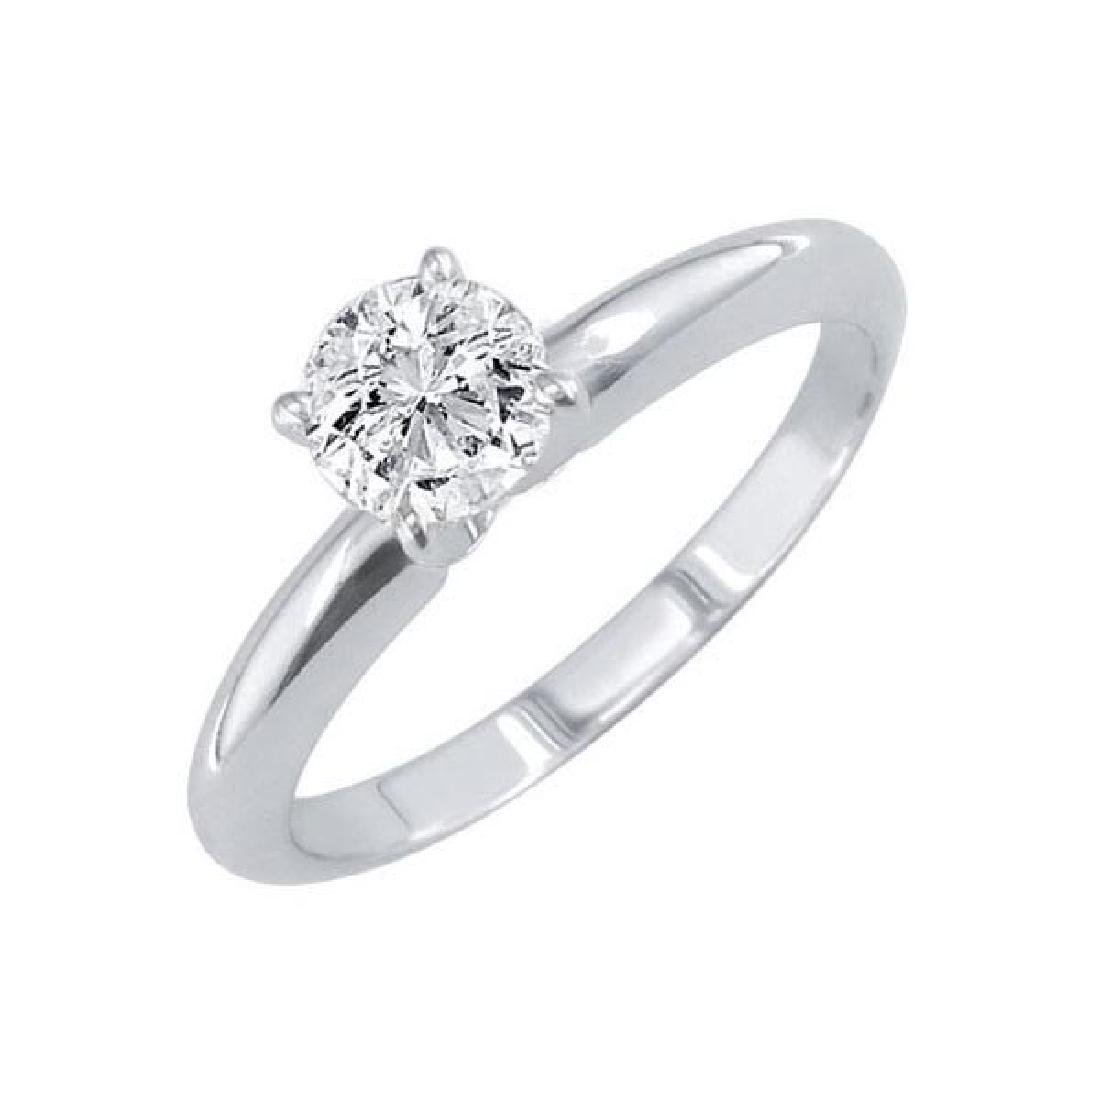 Certified 0.56 CTW Round Diamond Solitaire 14k Ring D/S